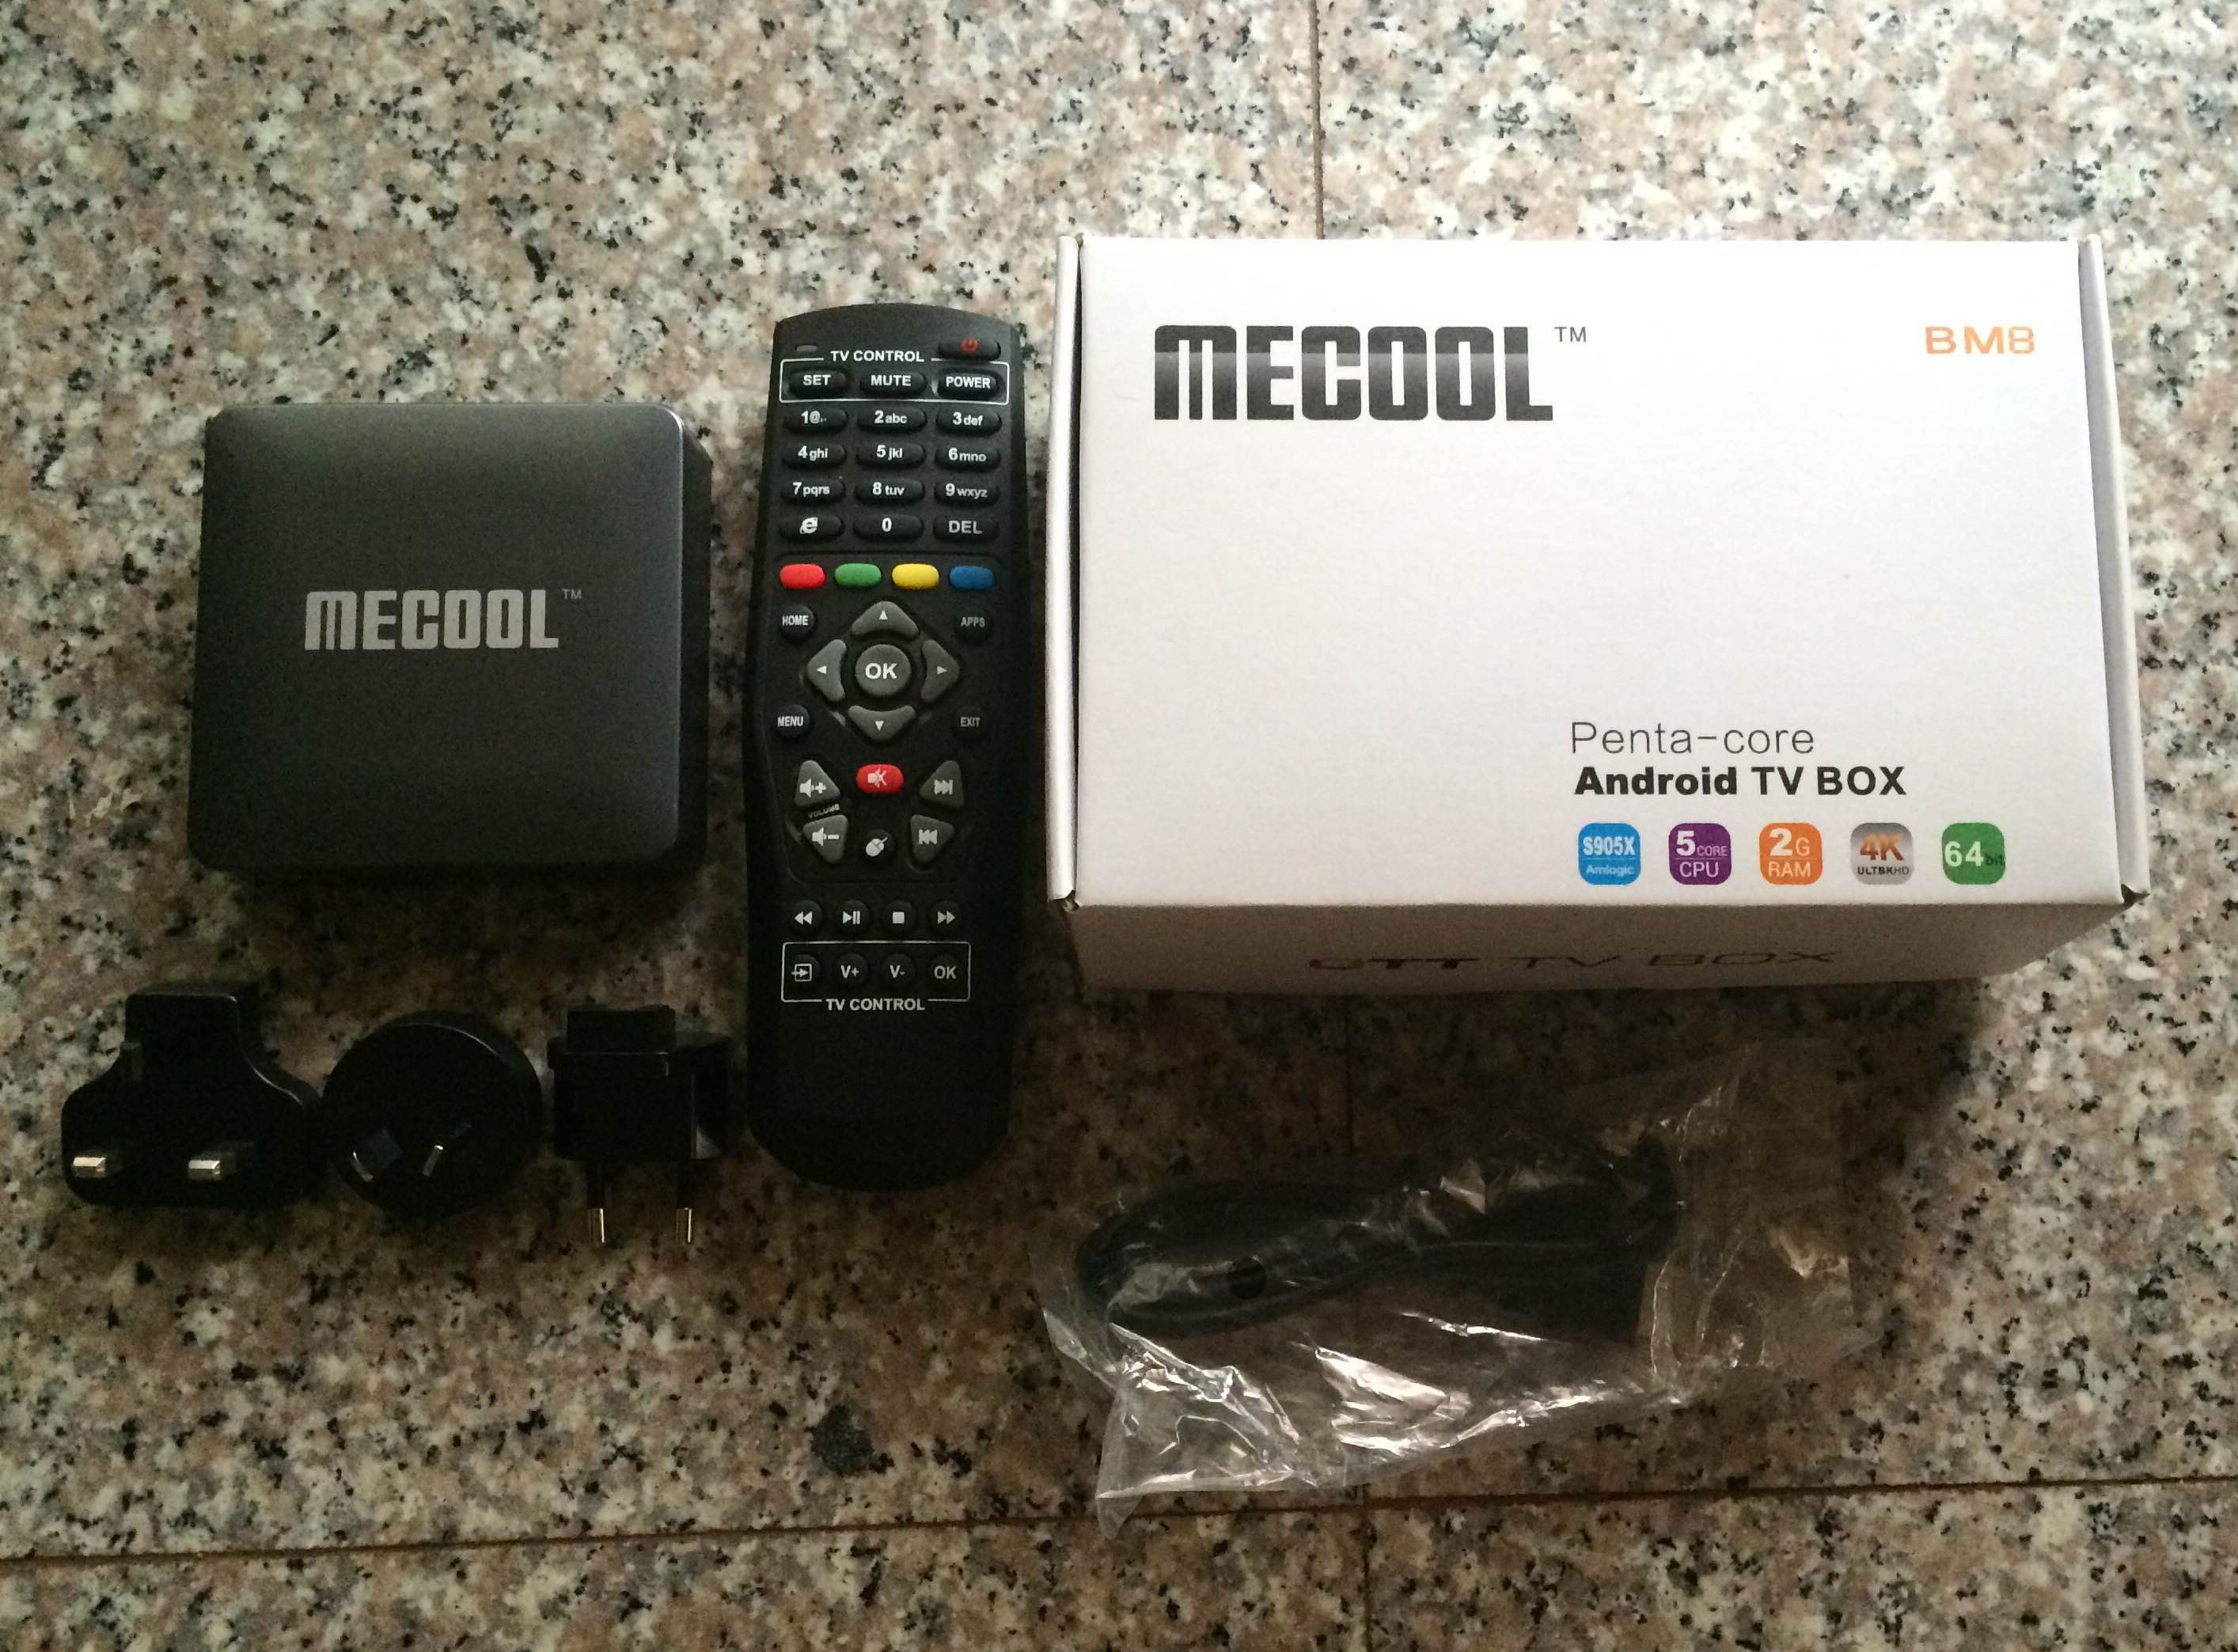 ТВ приставка Mi Box с Android TV 6 - mysku.me